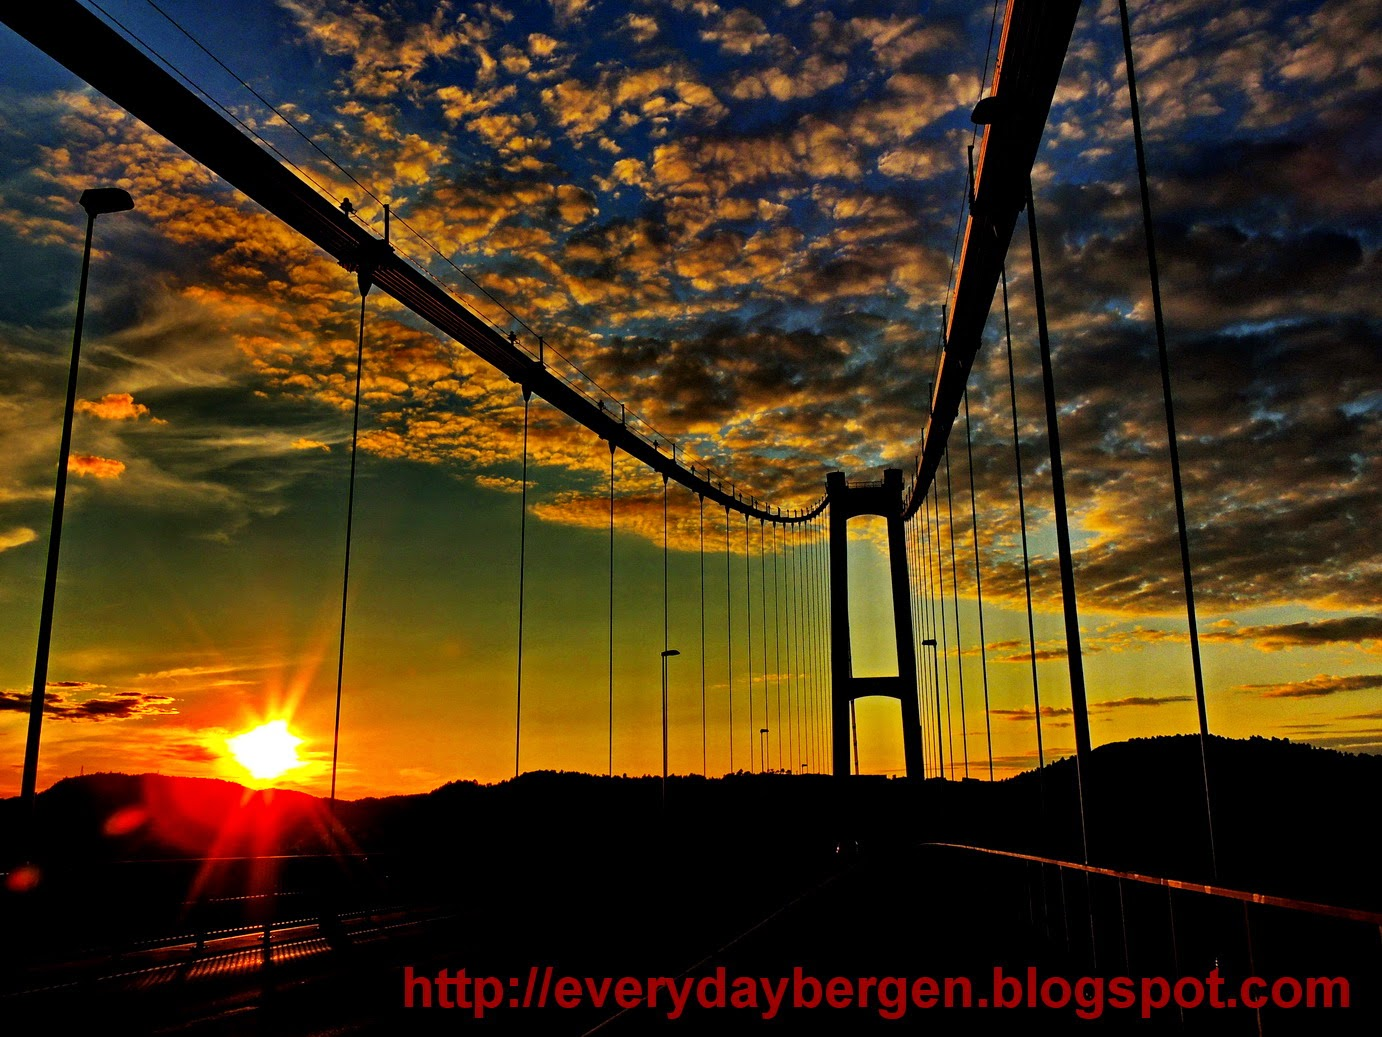 Sunset on Askøy bridge.